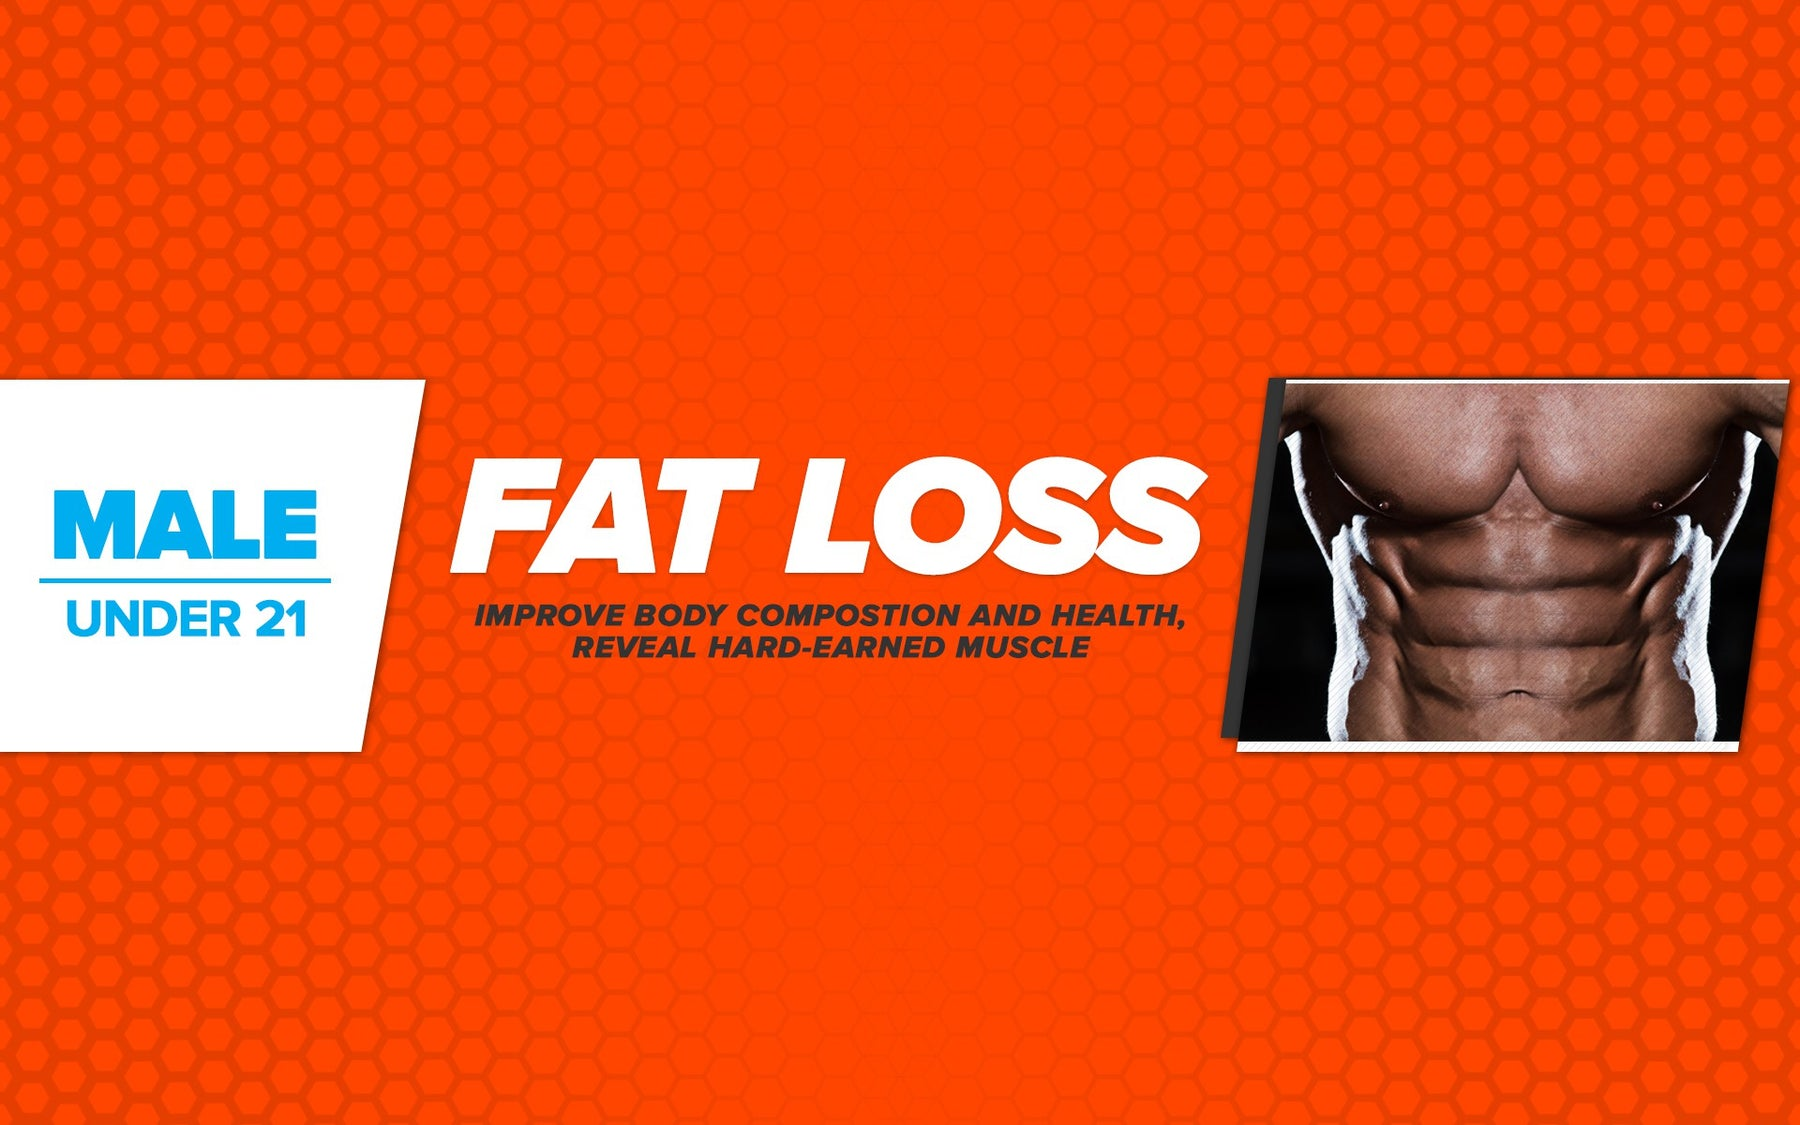 Free Workout Plan - Male - Under 21 - Fat Loss